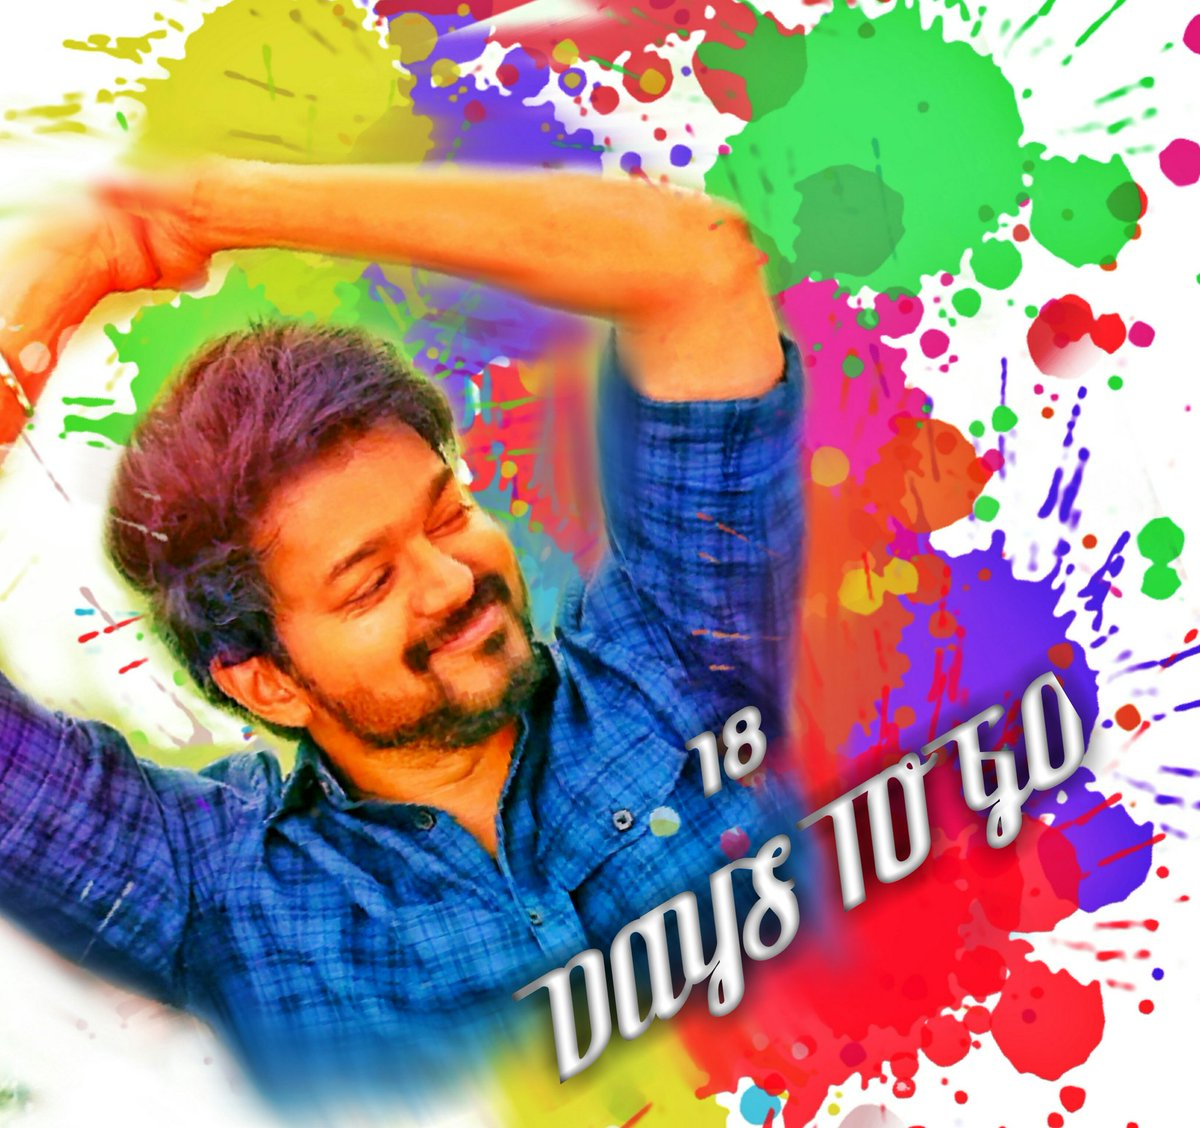 18 Days to go for our #Master Birthday   @actorvijay #SpreadVIJAYism<br>http://pic.twitter.com/lygD4n7QL1